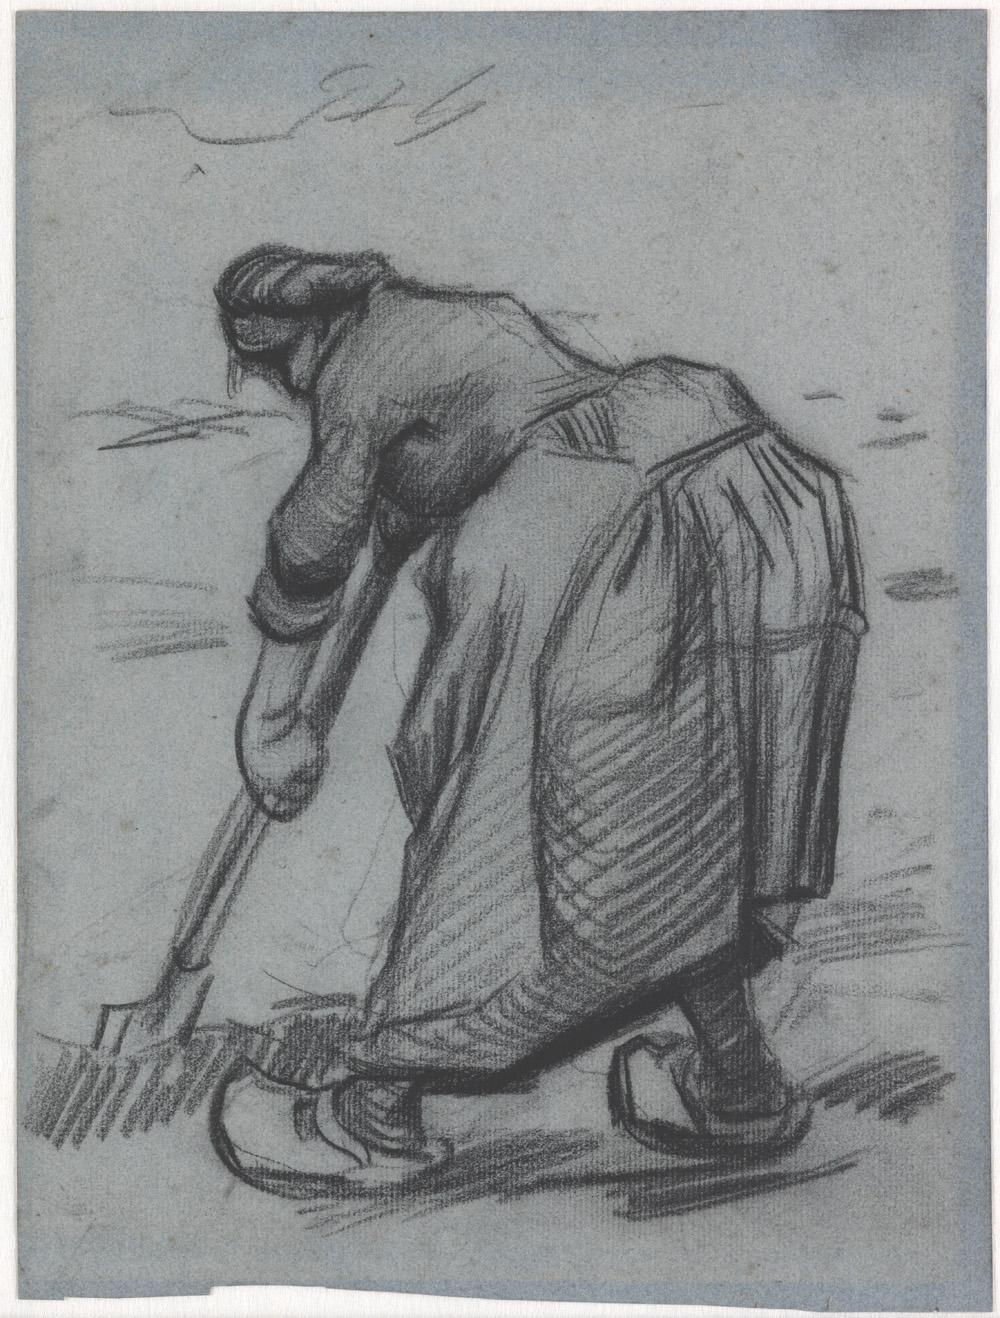 Vincent van Gogh, Woman digging, 1885